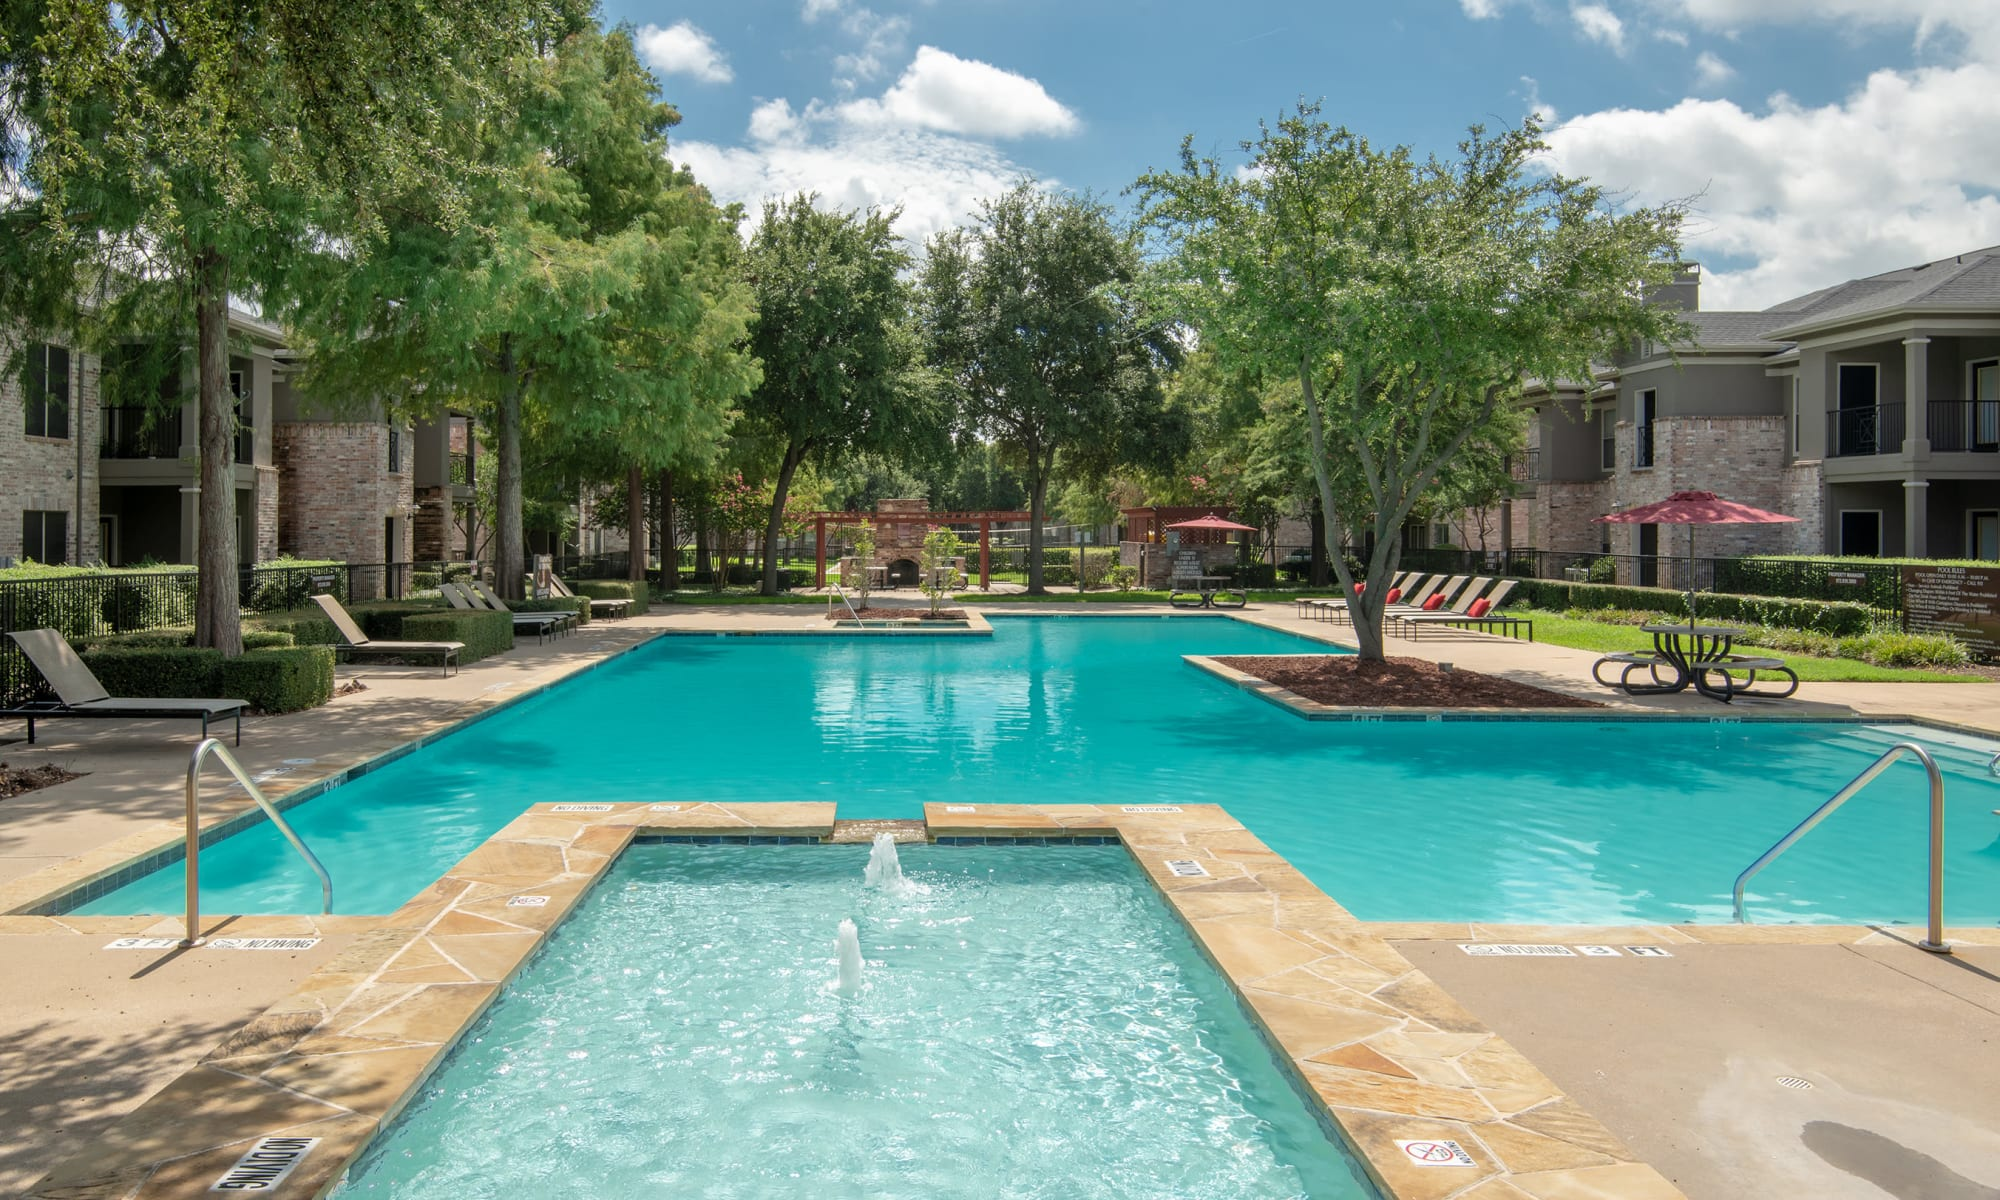 Apartments at The Springs of Indian Creek in Carrollton, Texas